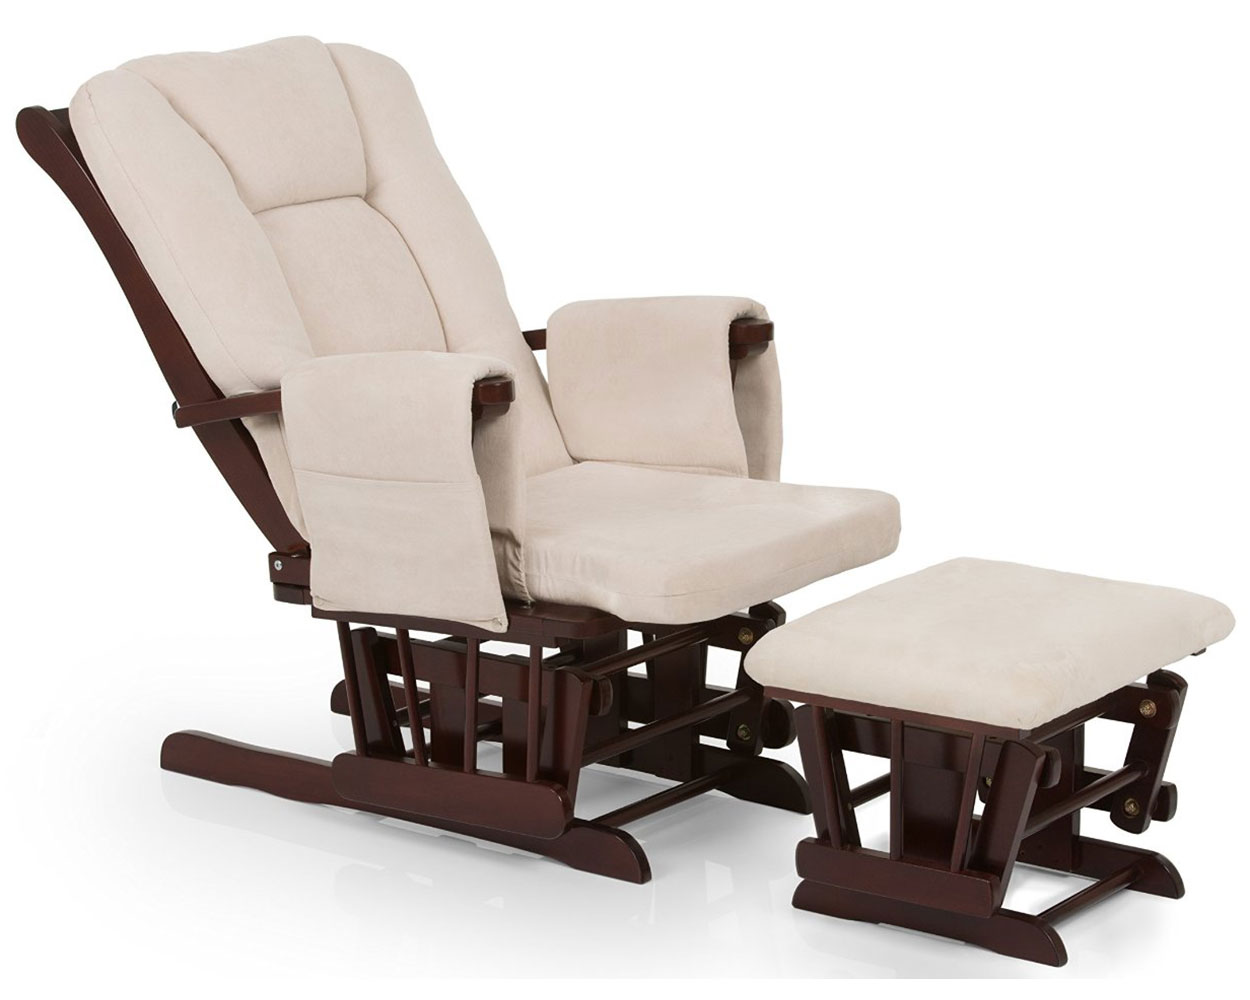 HAUCK WOODEN GLIDER DELUXE WALNUT NURSING CHAIR NURSERY